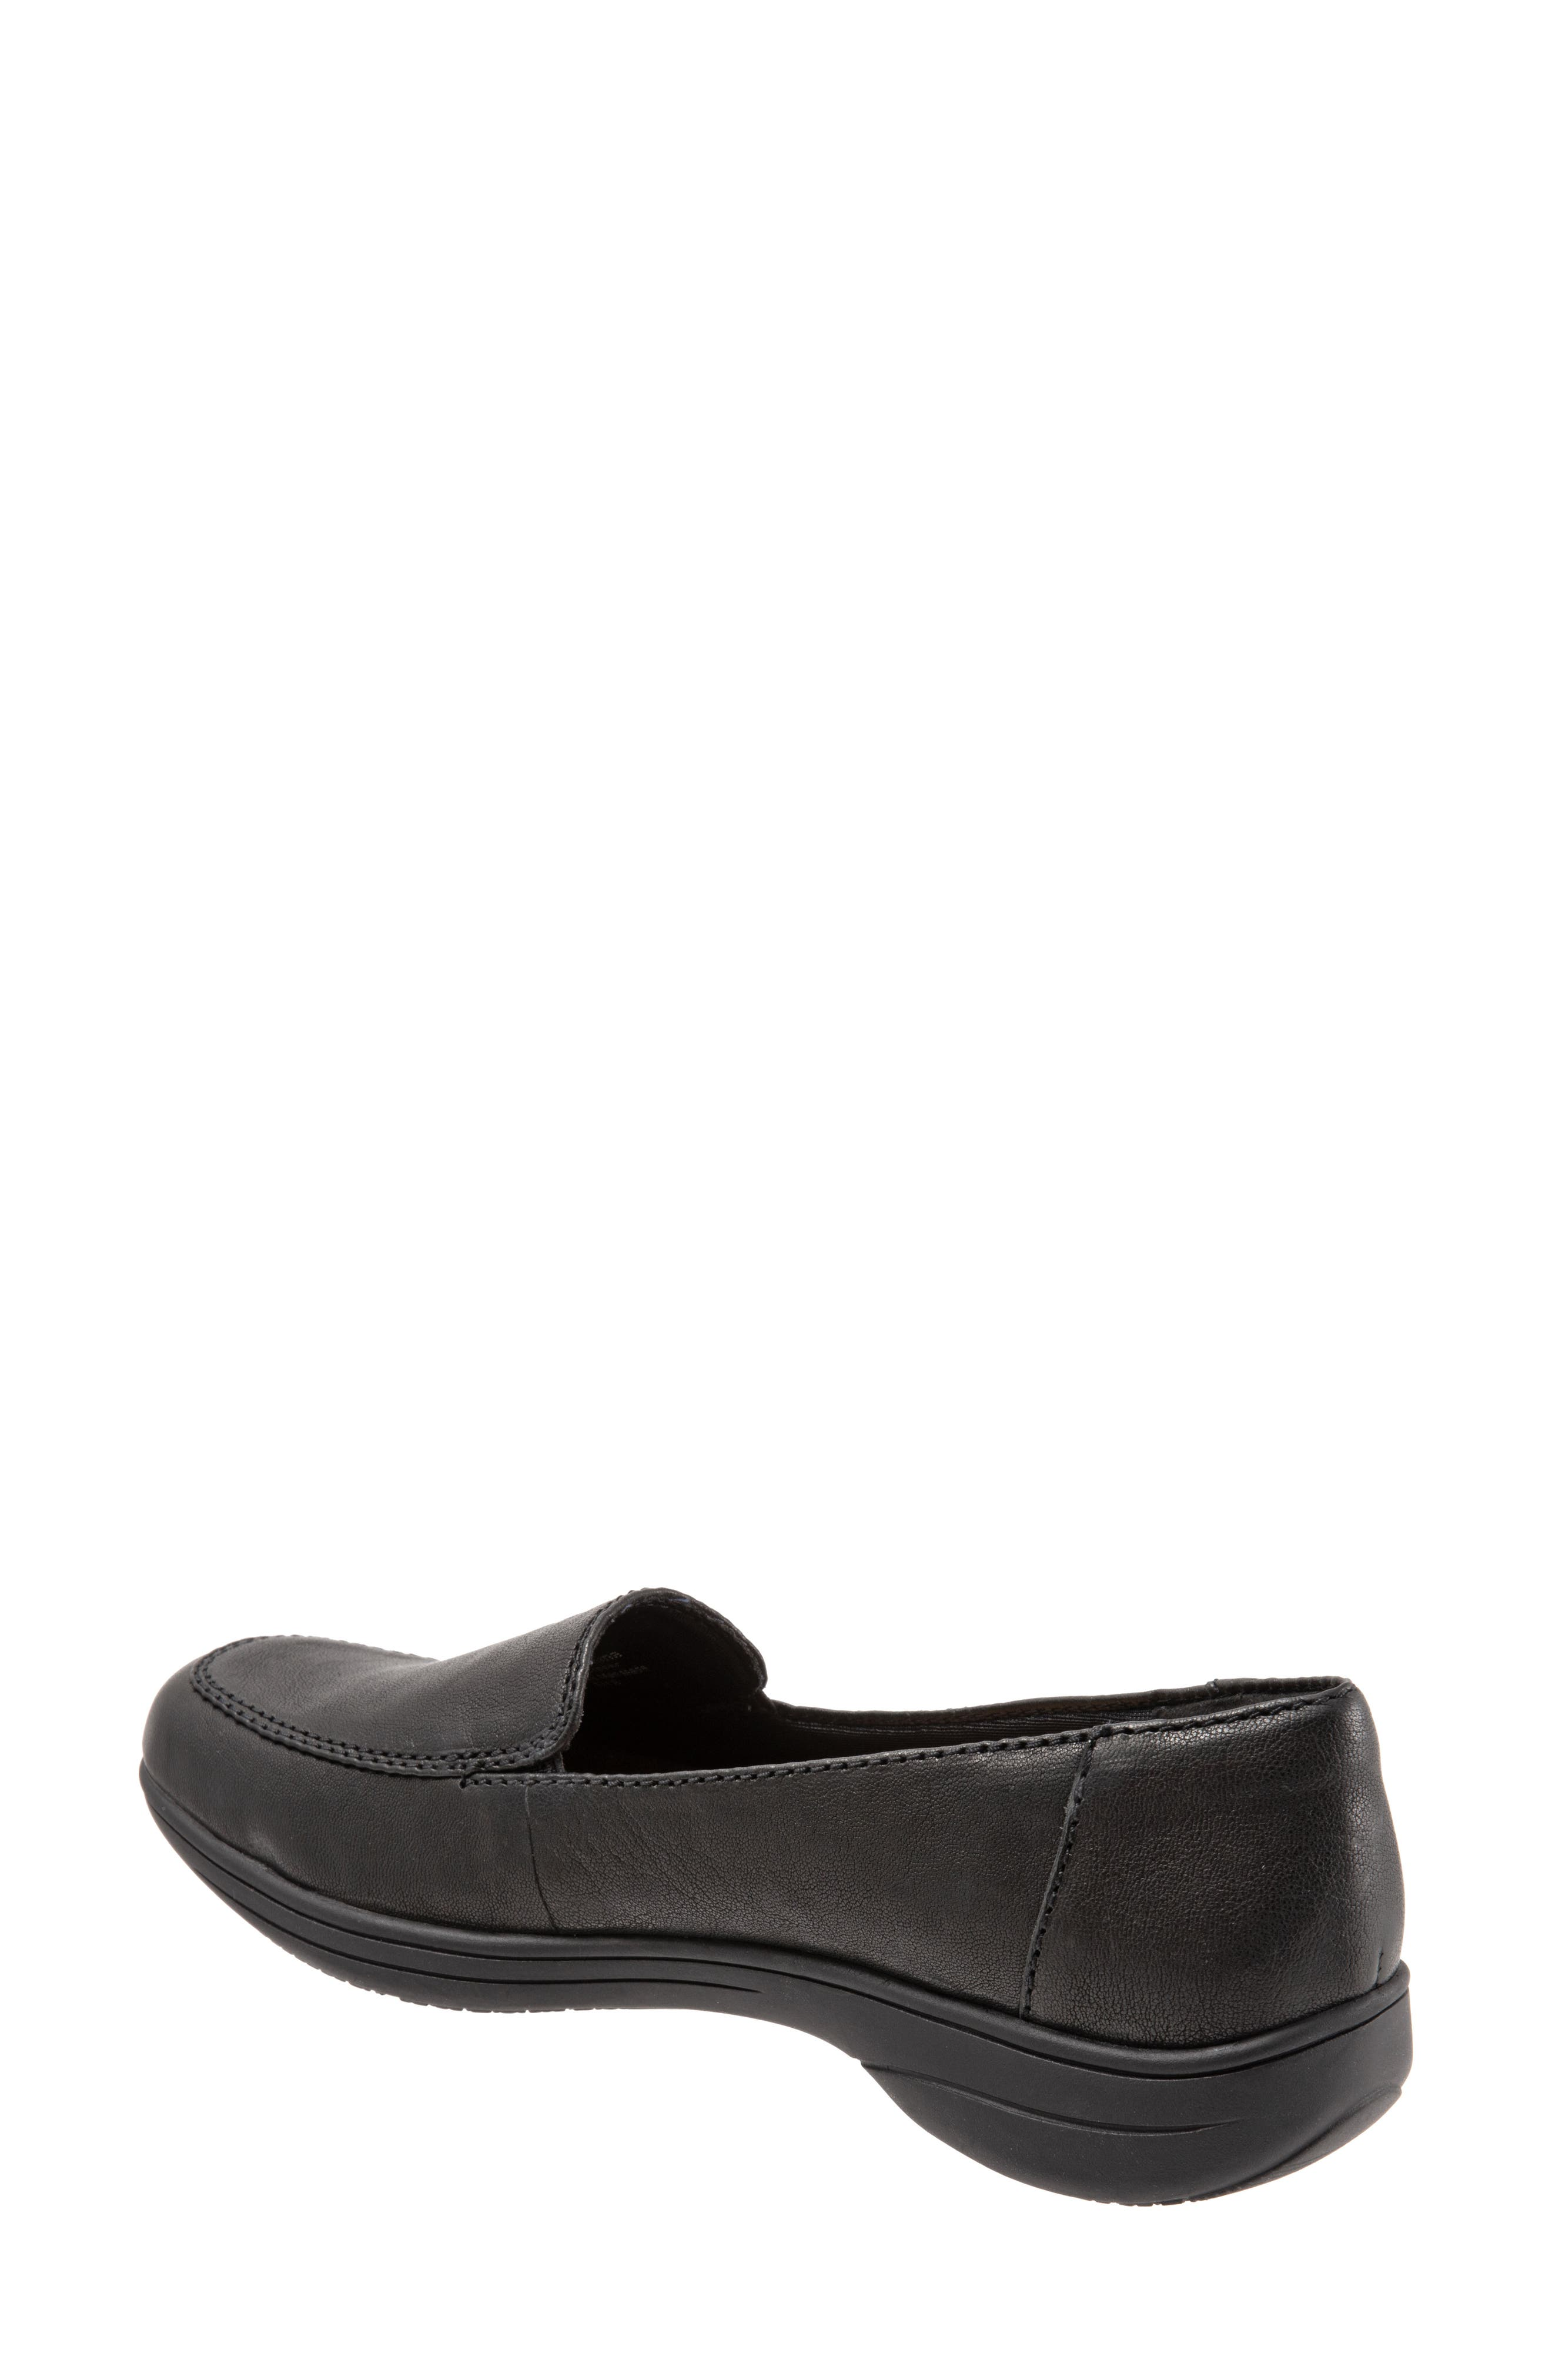 Jacob Loafer,                             Alternate thumbnail 2, color,                             BLACK LEATHER